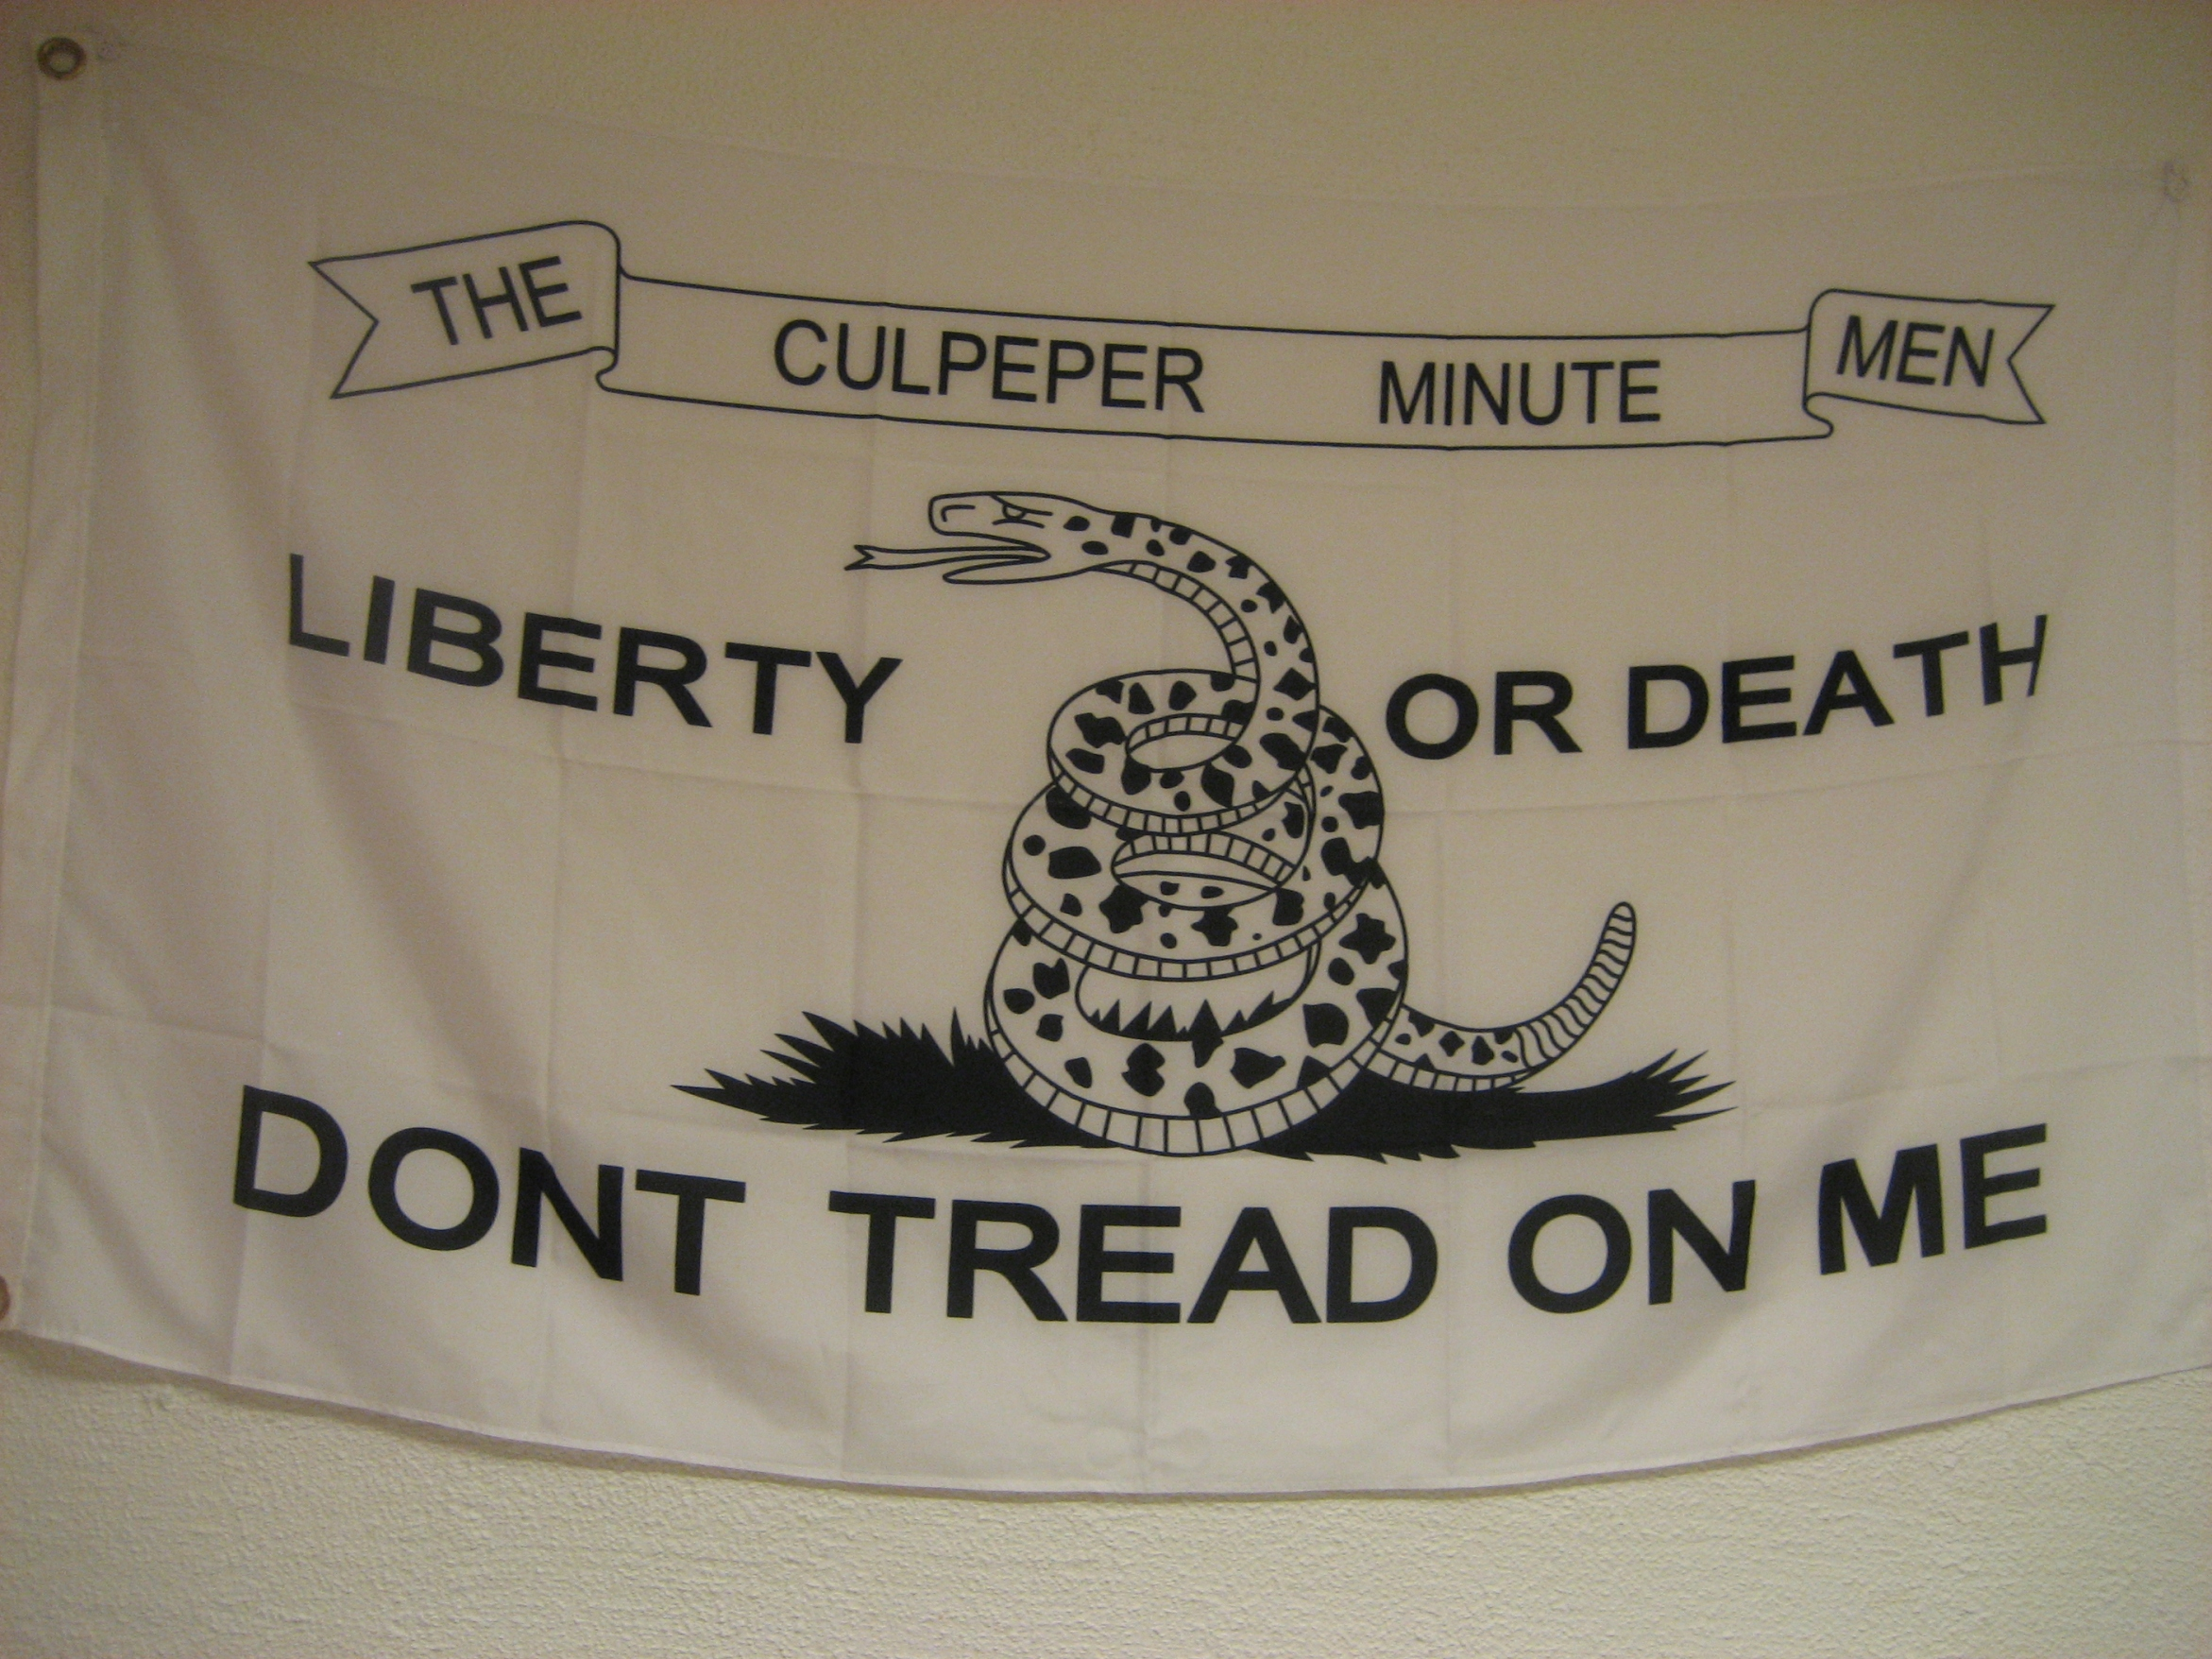 Don't tread on me.